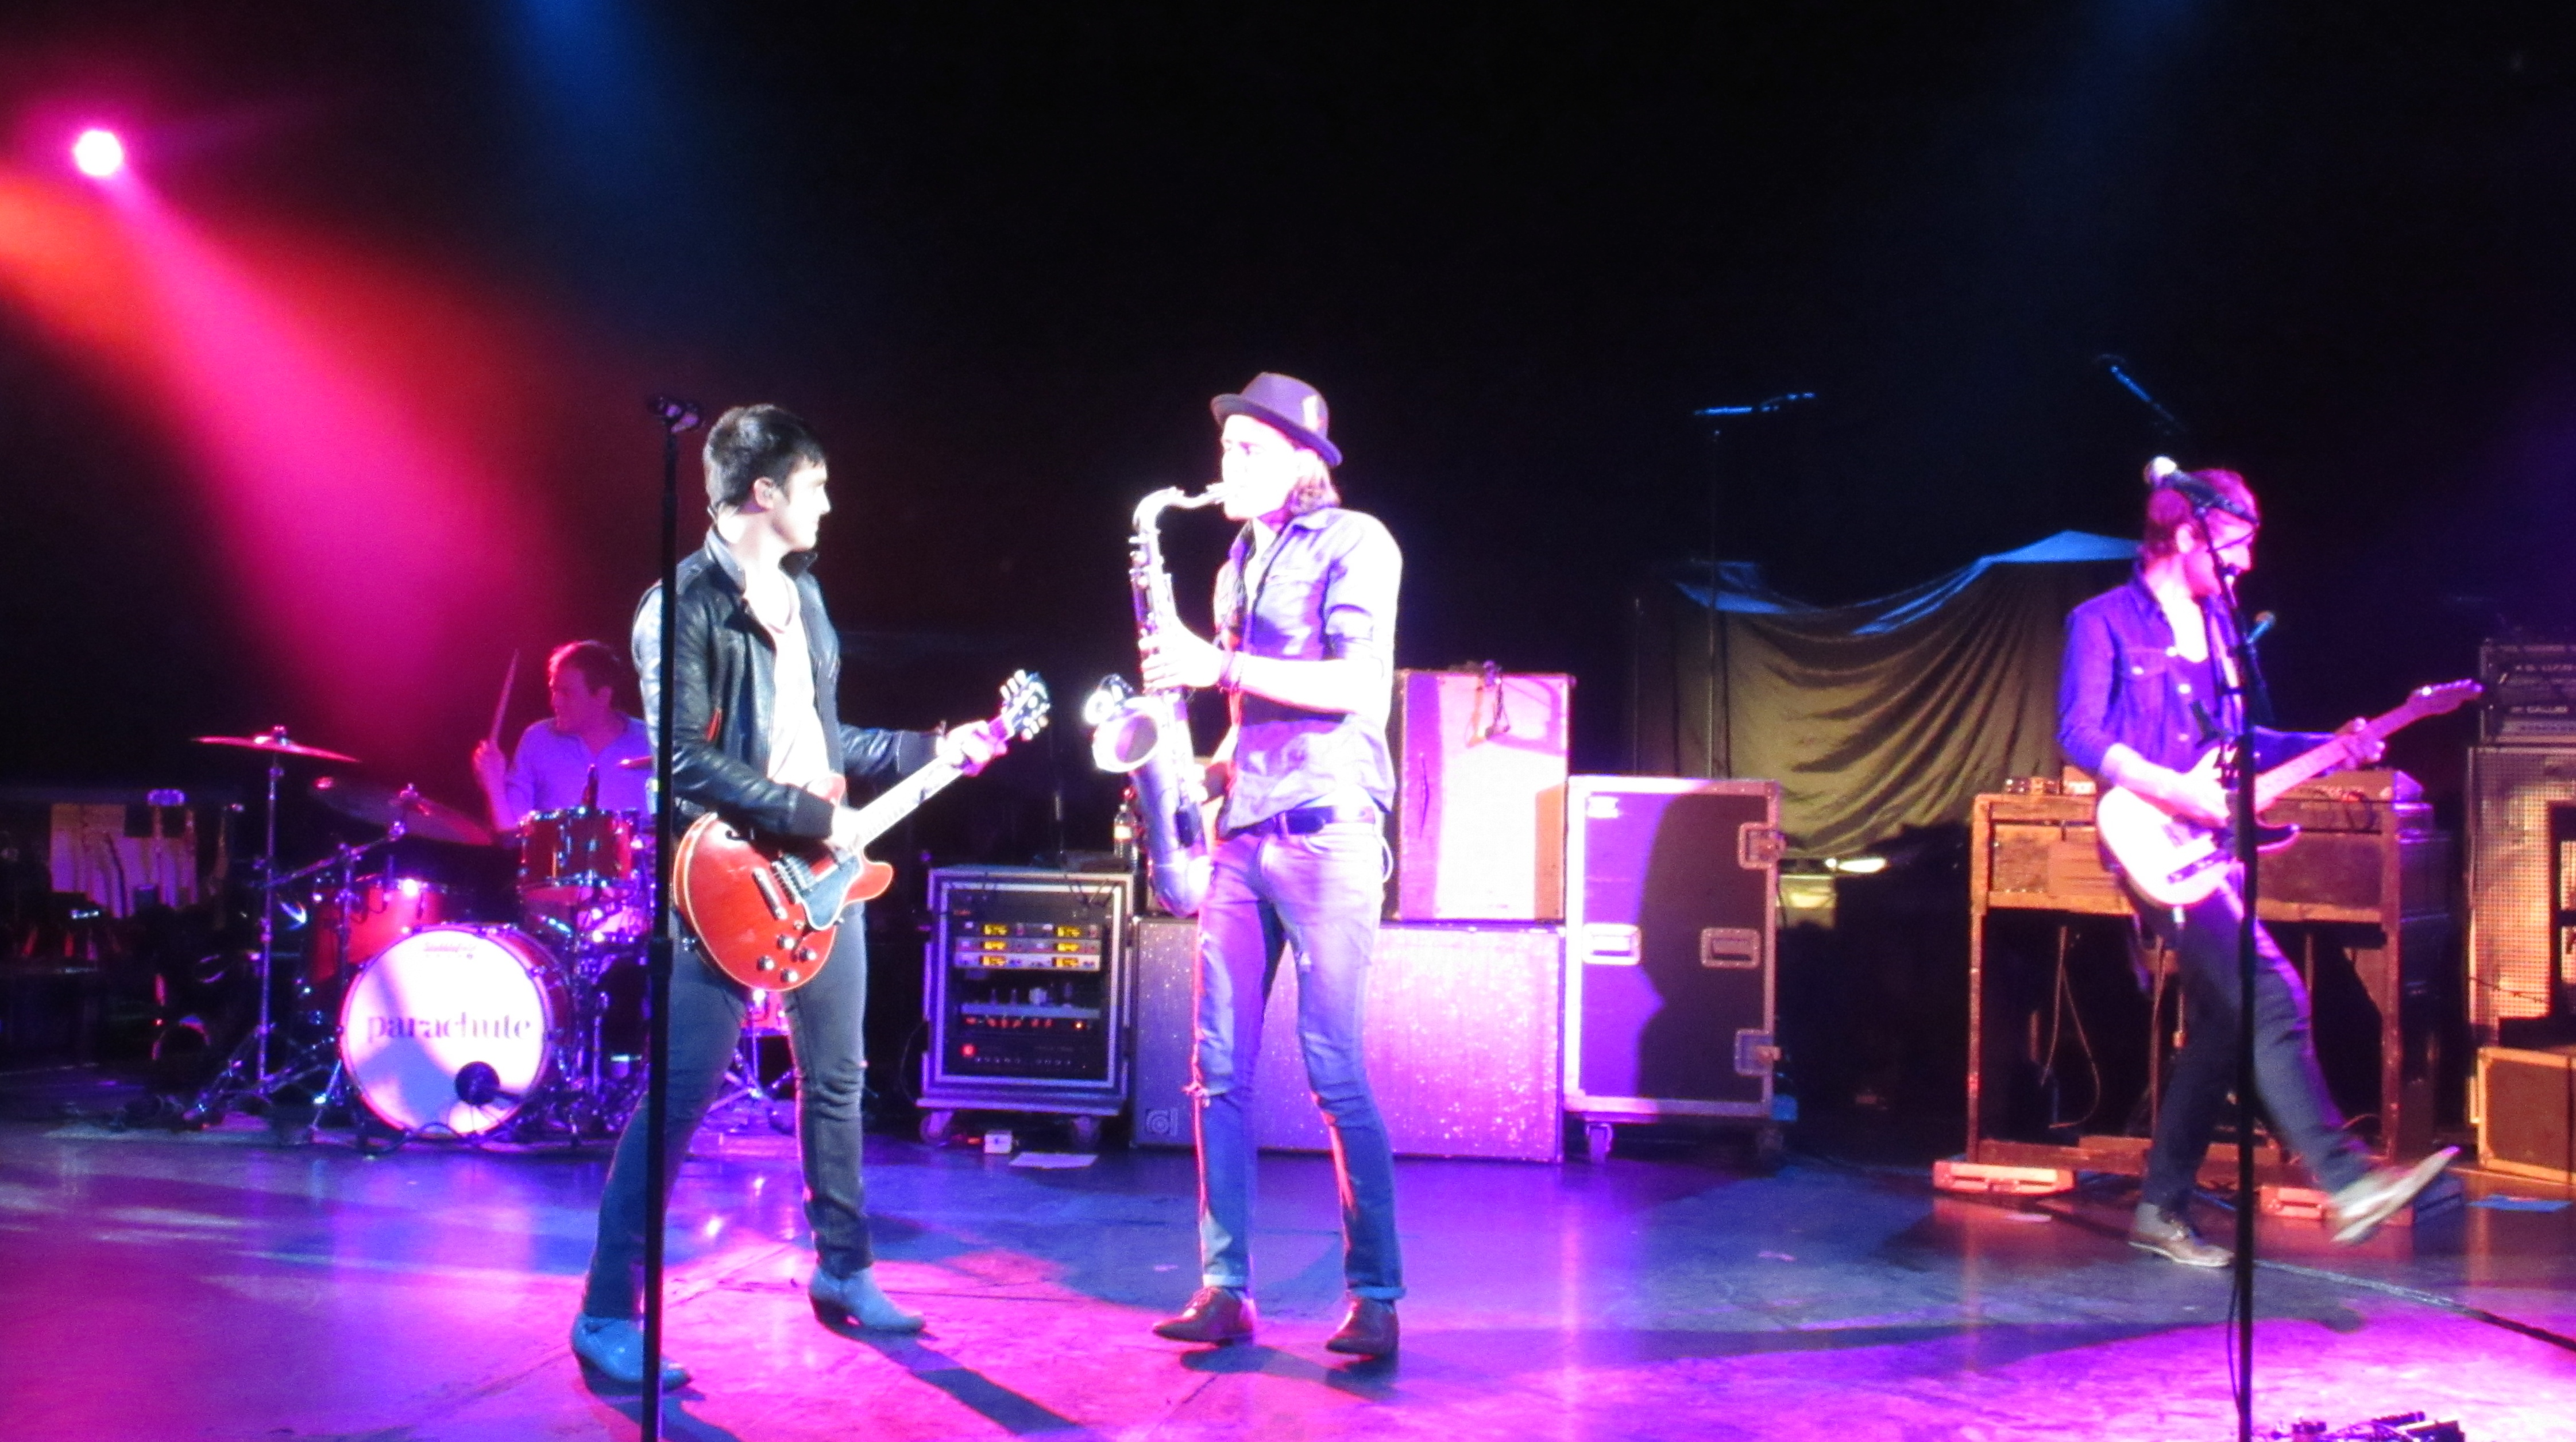 PARACHUTE TOURS WITH GAVIN DEGRAW